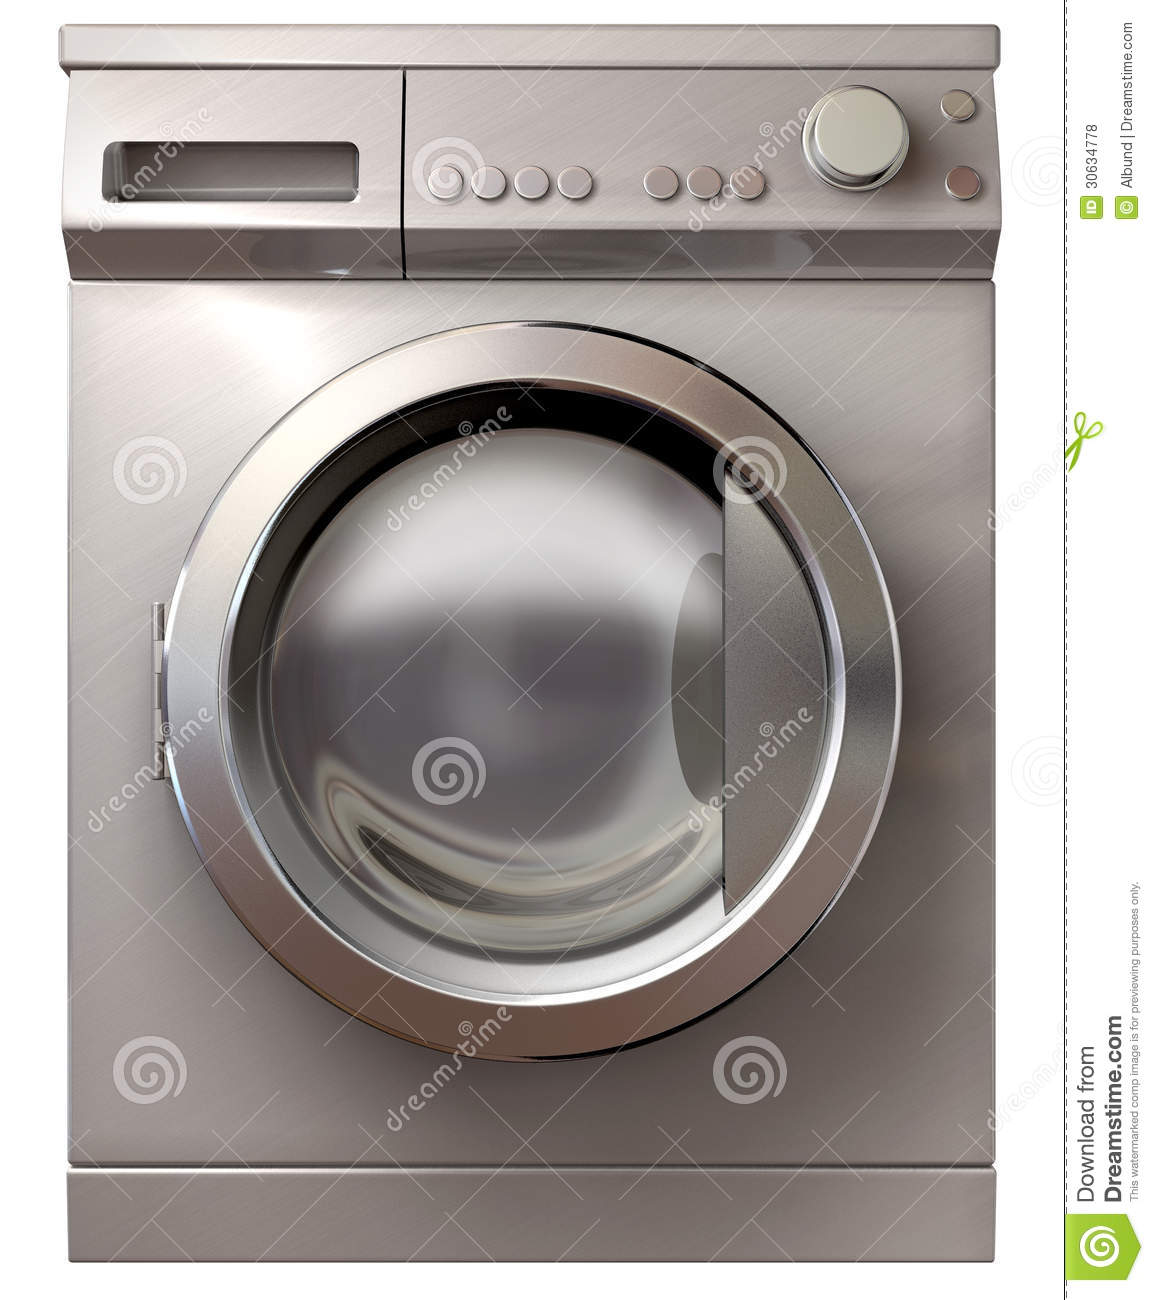 washing machine front view royalty free stock photos free apple clipart for cricut free apple clip art download